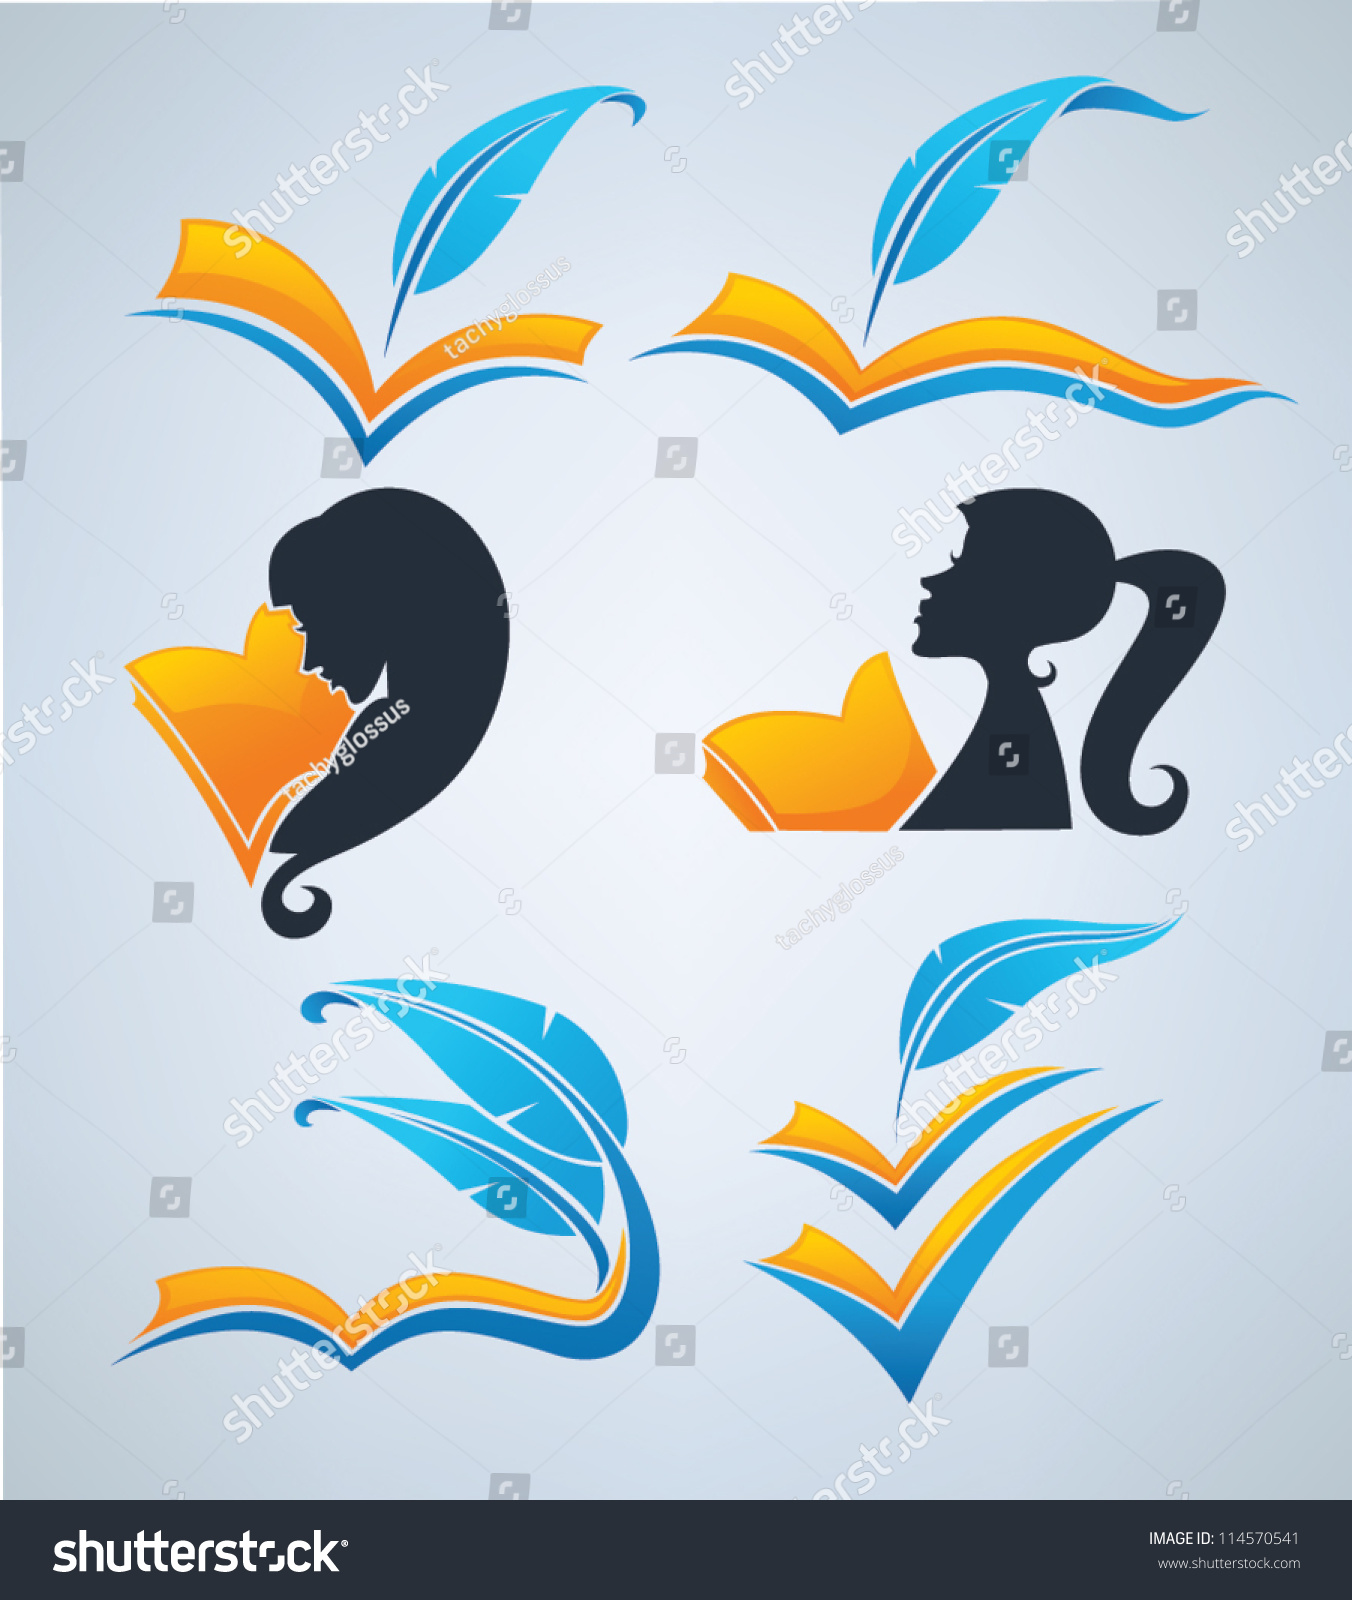 a symbol in literature literature reading writing poetry vector collection stock vector